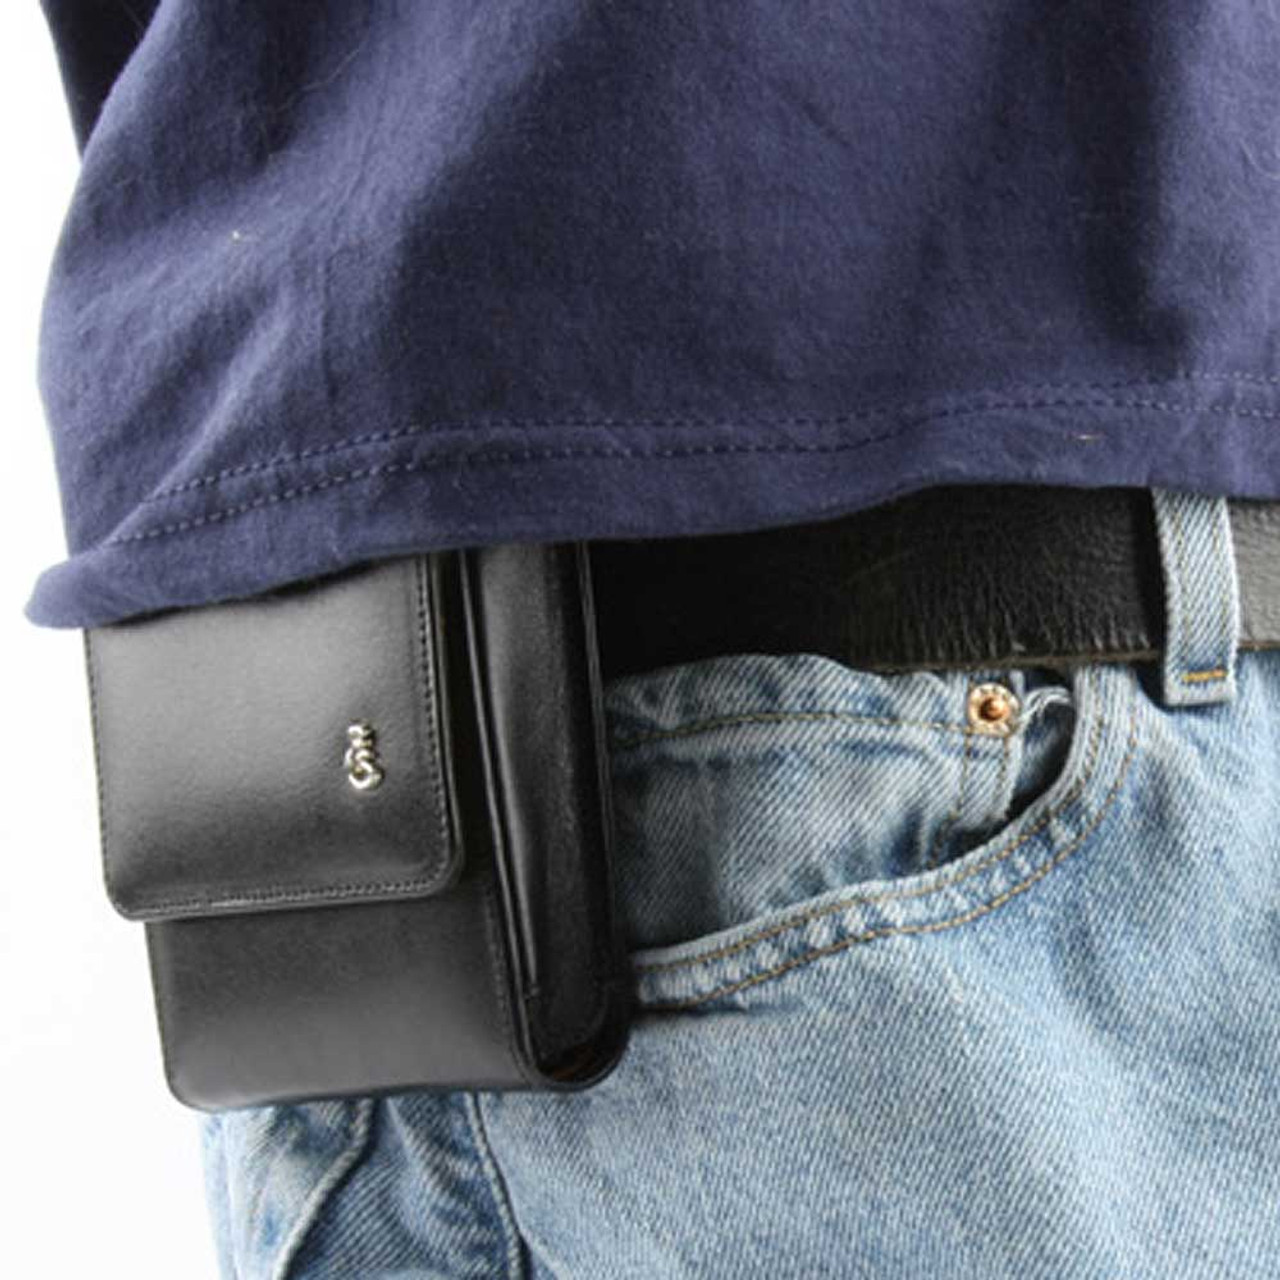 Sig P290 Sneaky Pete Holster (Belt Clip)